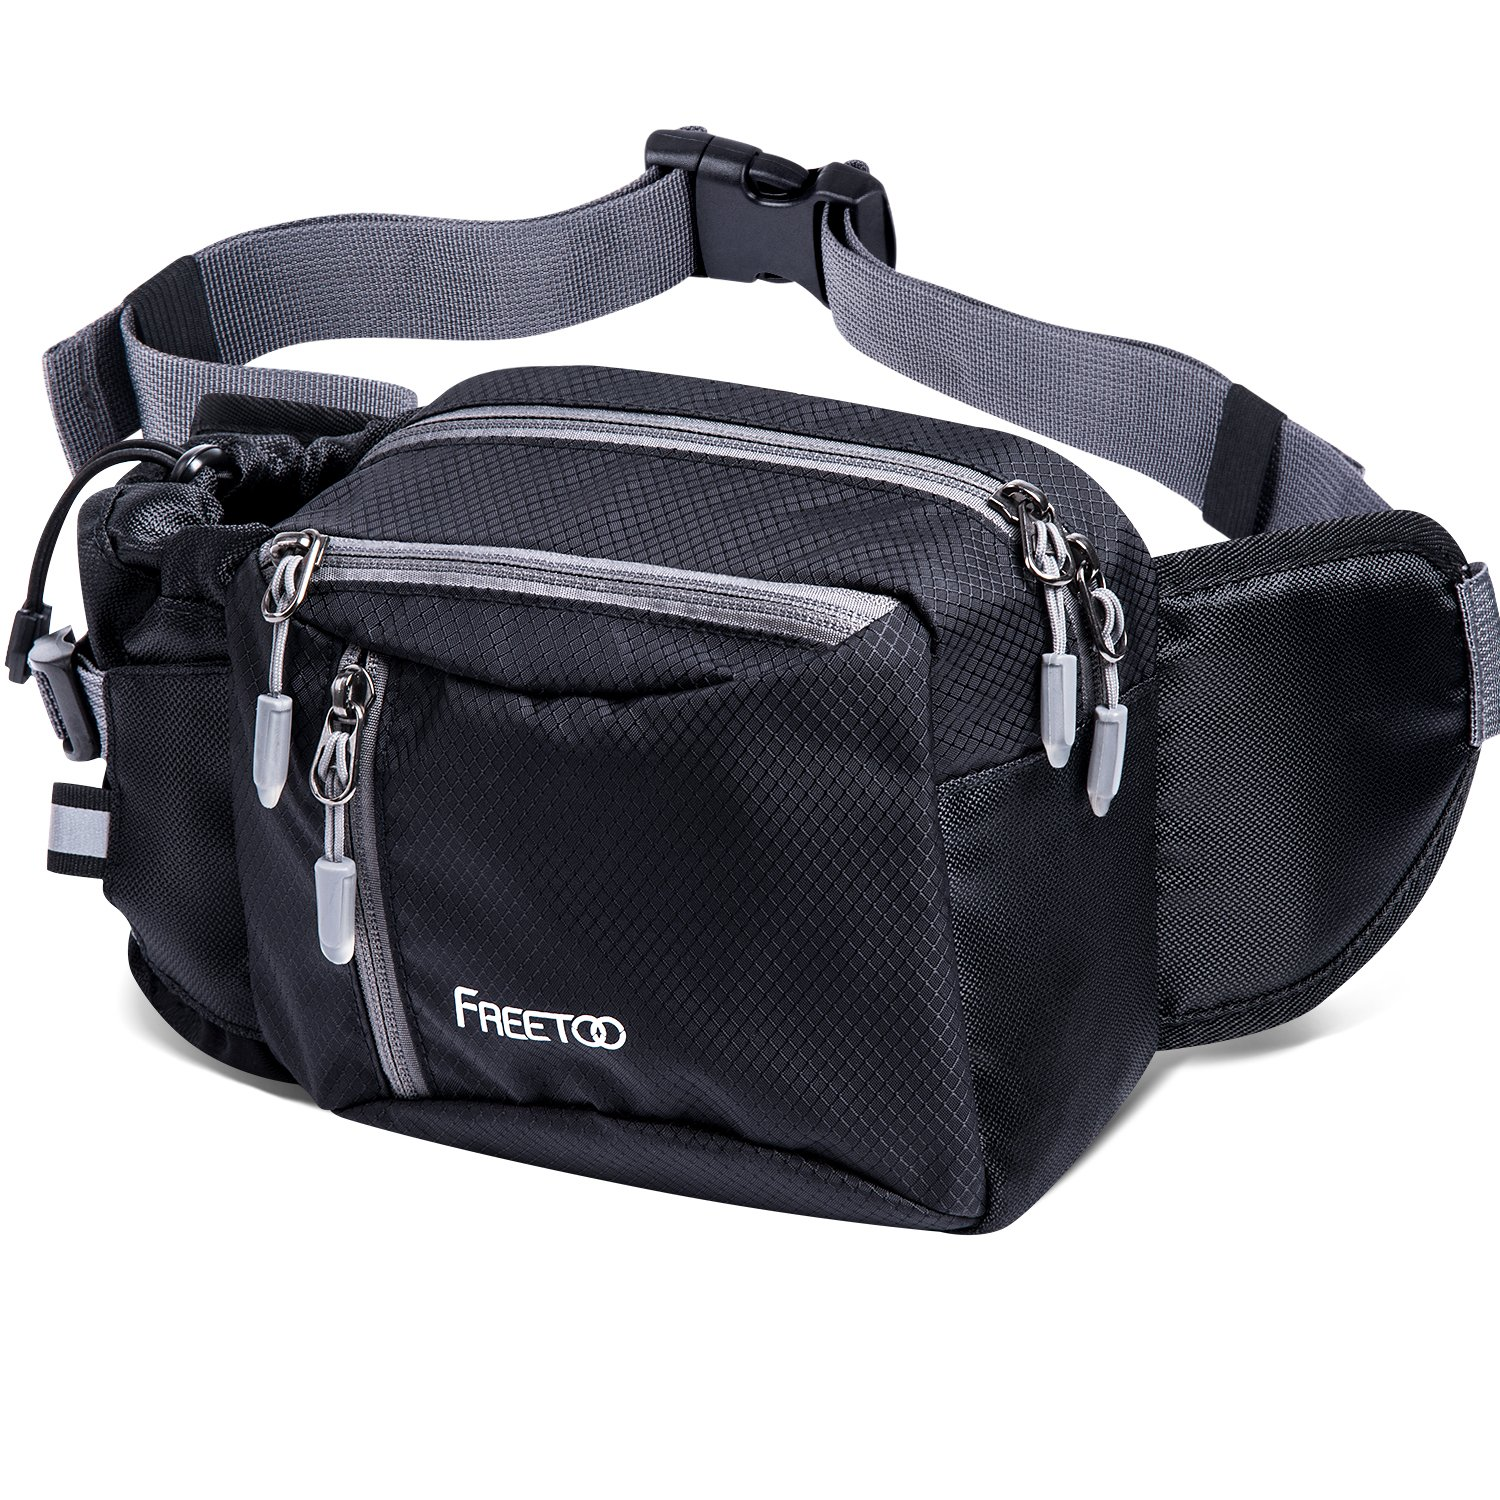 FREETOO Hiking Waist Pack Bum Bag Waist Bag Running Bag Water Resistant with Bottle (Not Included) Holder for Climbing Camping Dog Walking